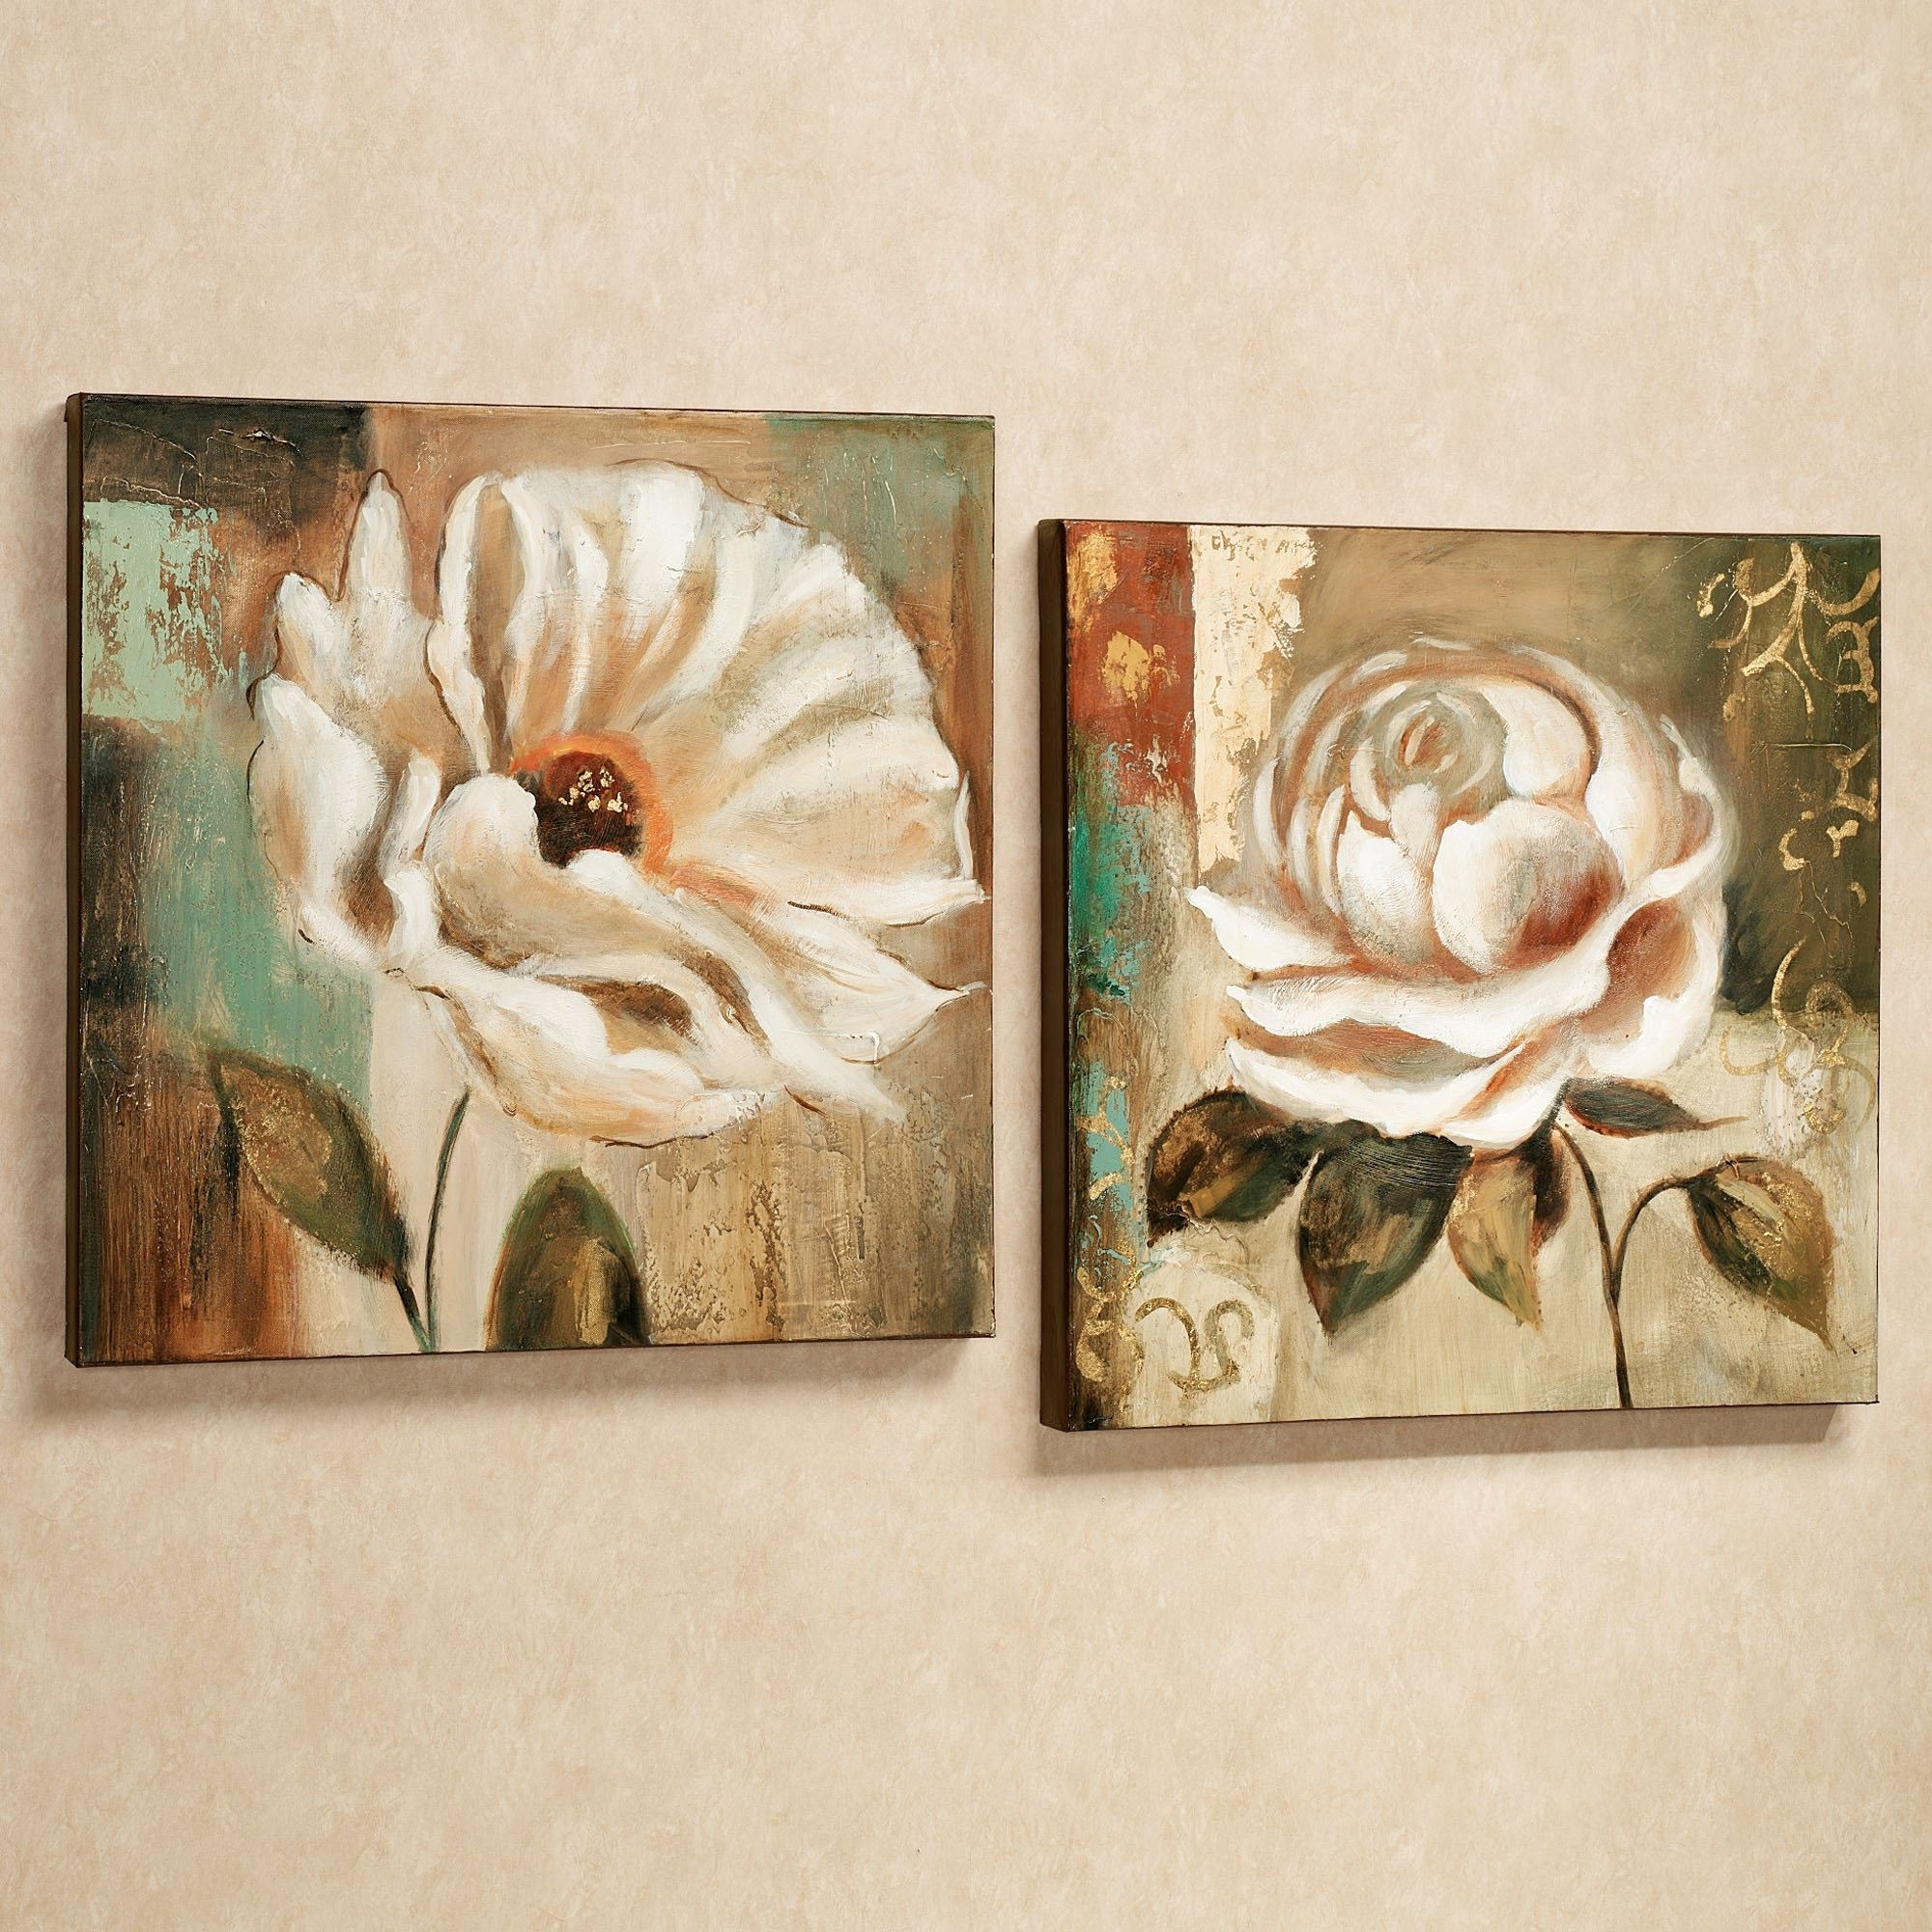 Wall Art Design: Floral Canvas Wall Art Garden Delicacies Canvas In 2018 Rectangular Canvas Wall Art (View 8 of 15)